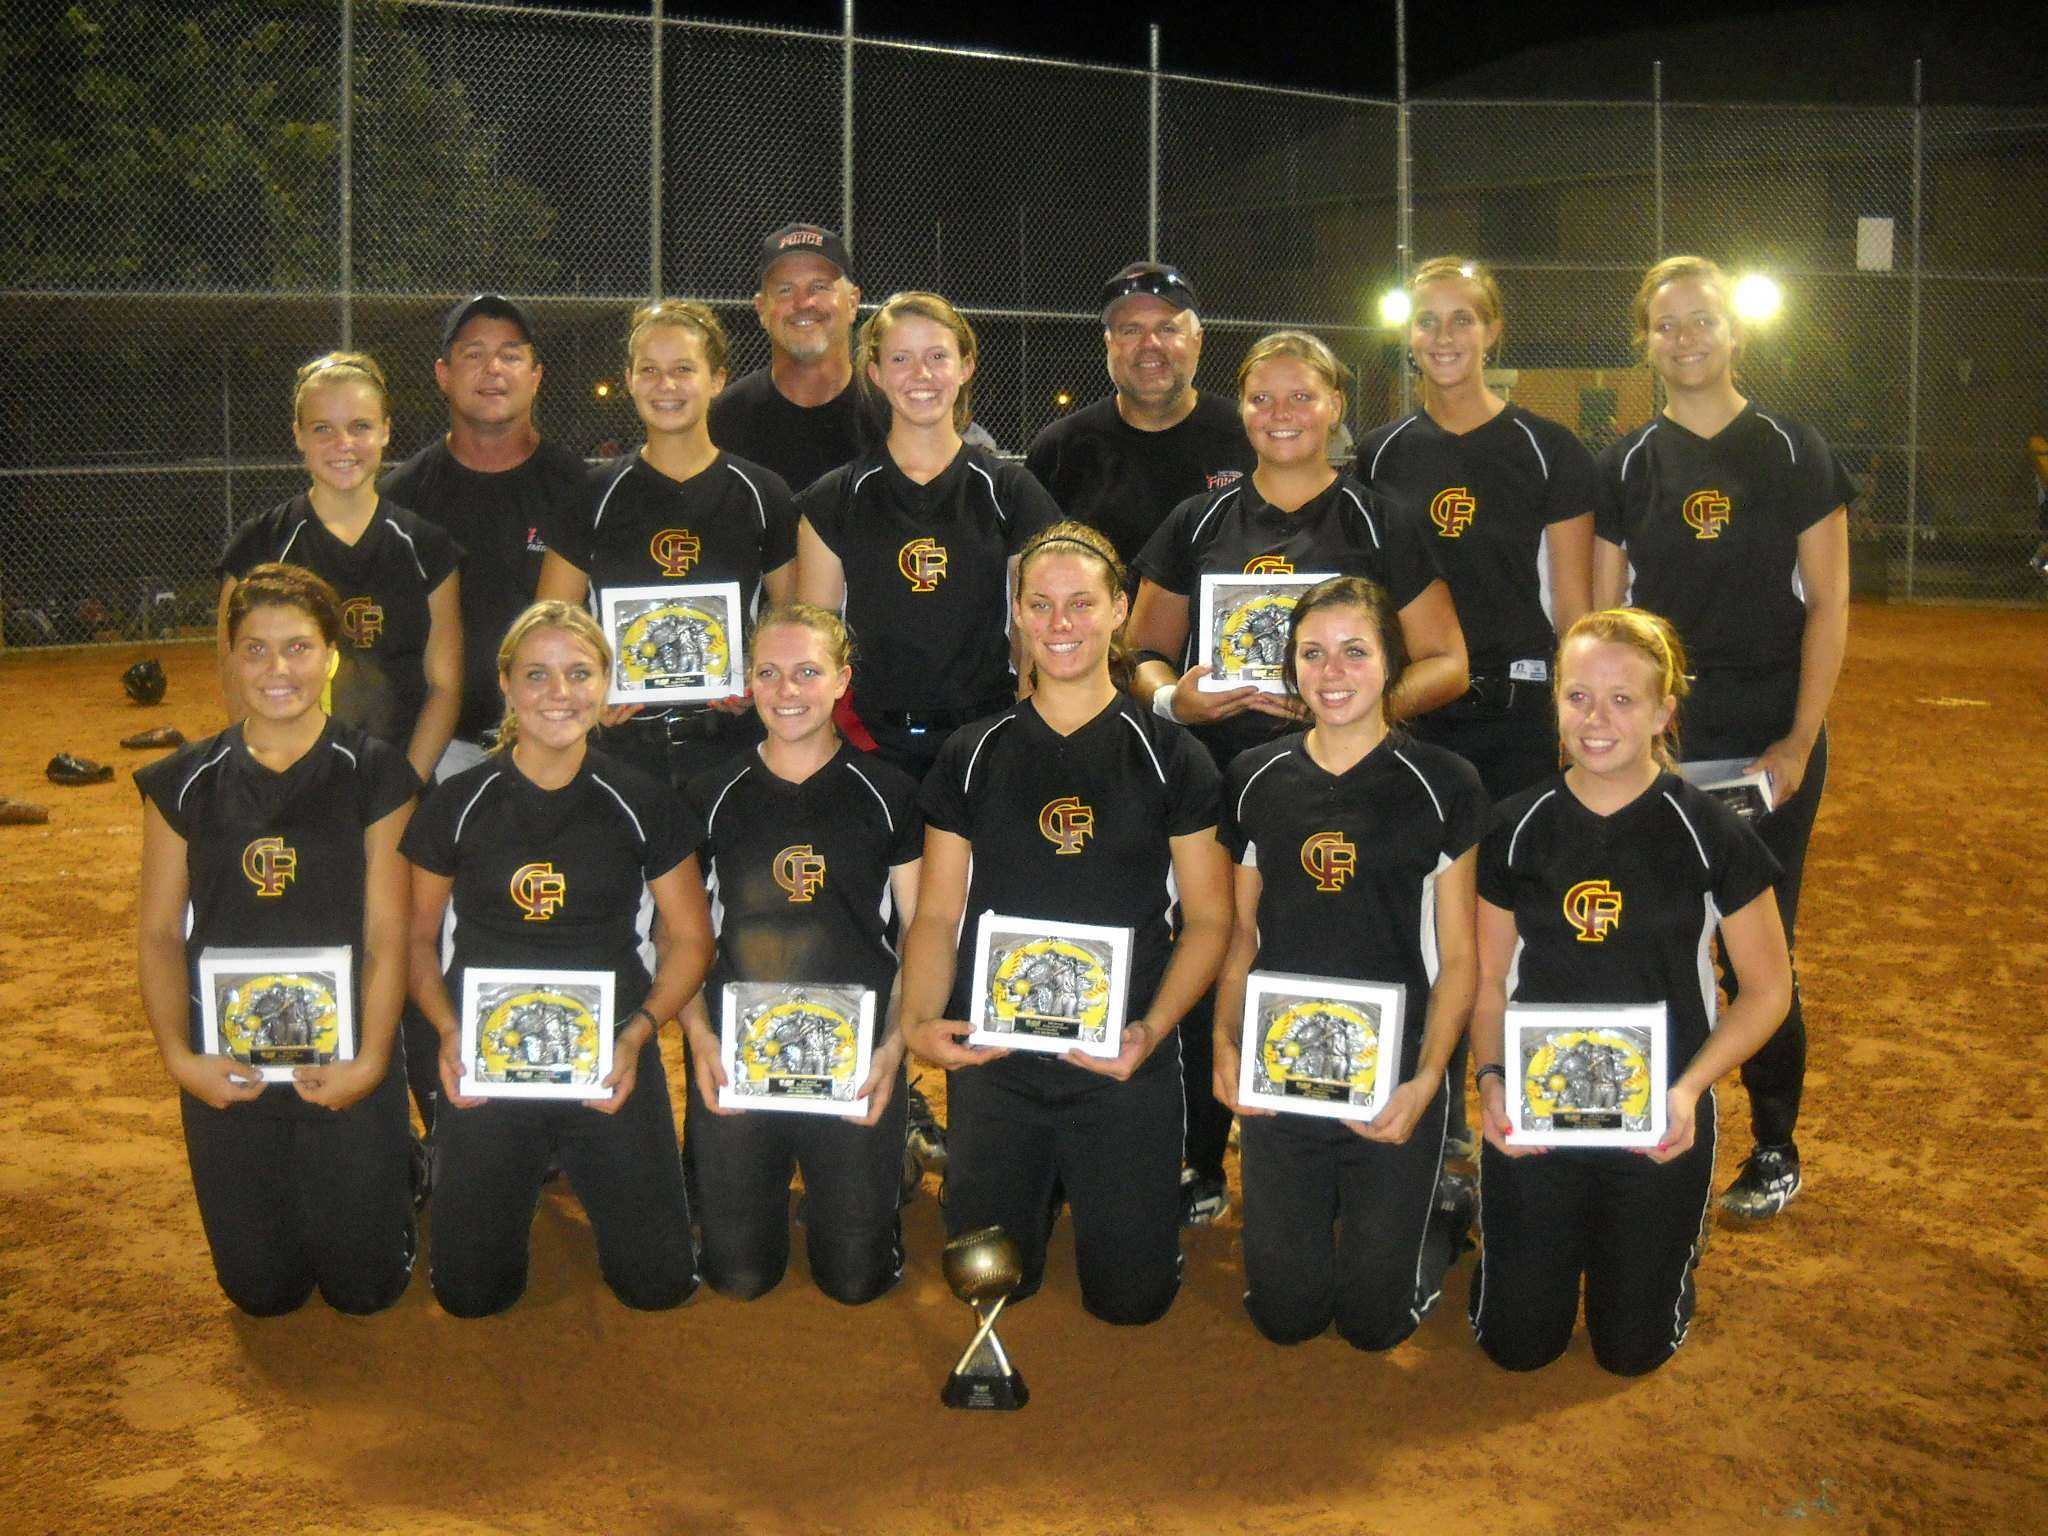 2011 ASA Nationals Here We Come